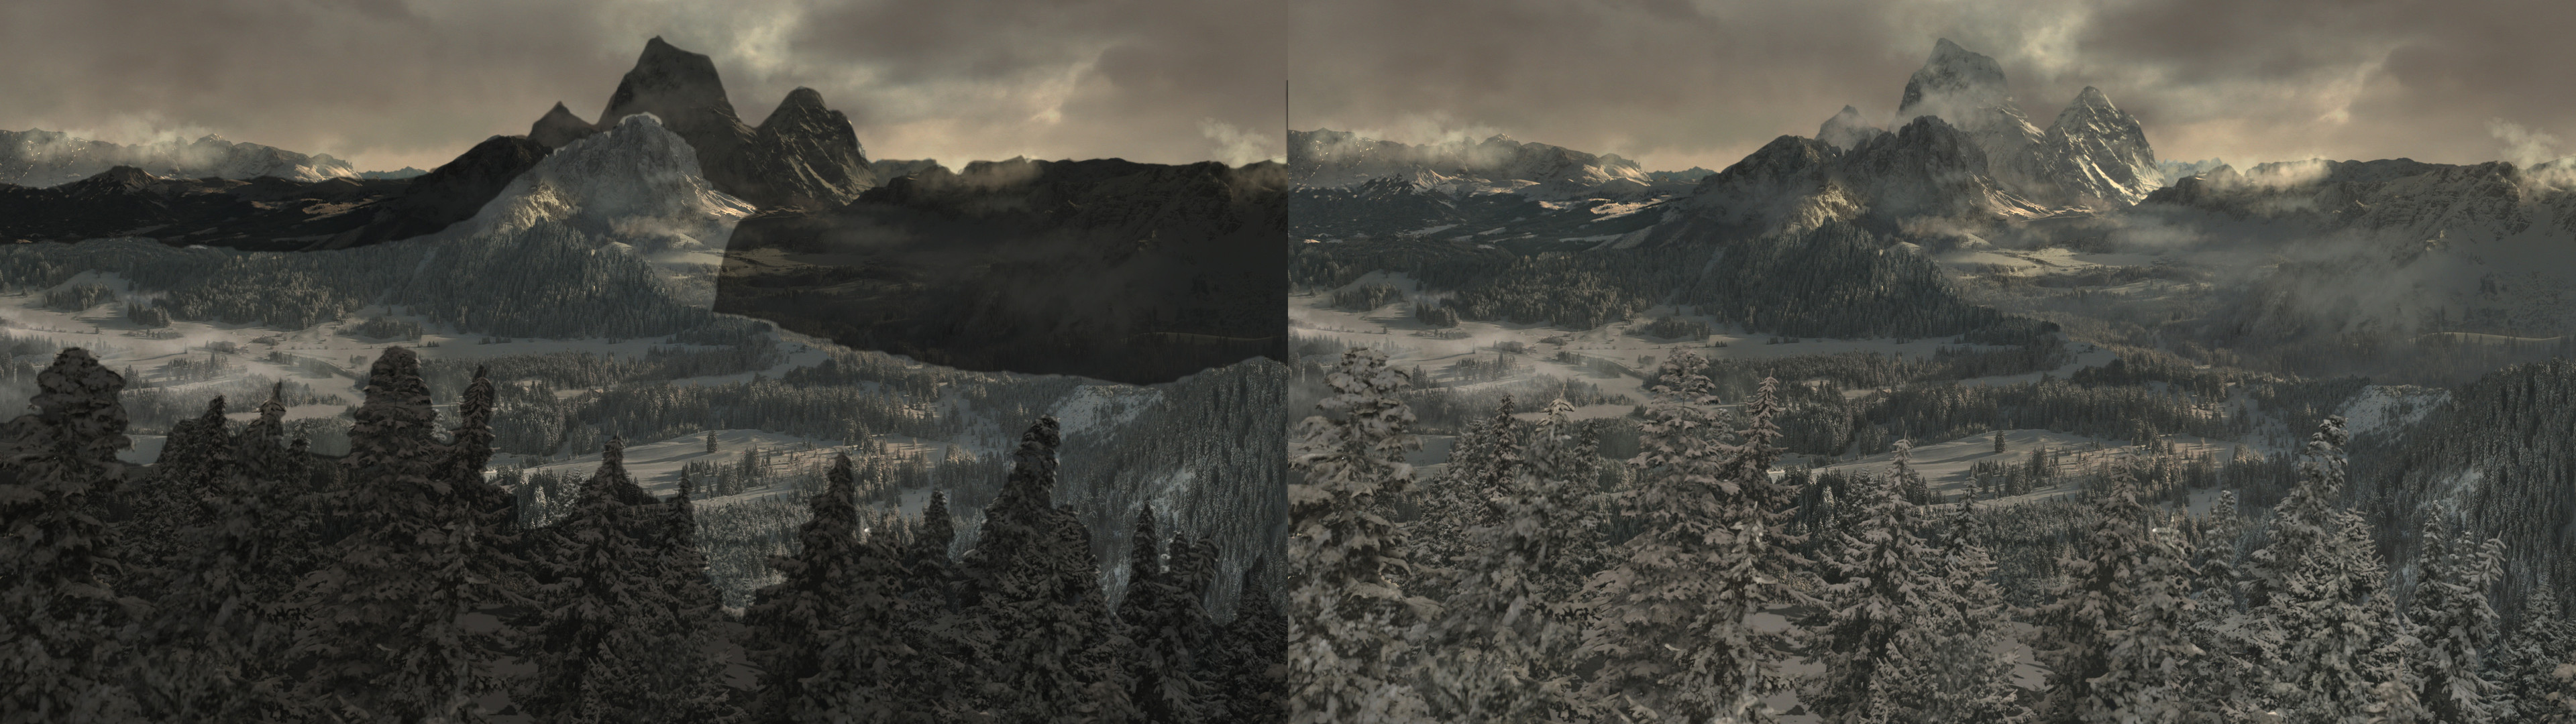 Marvel's Agents of Shield: Snowscape